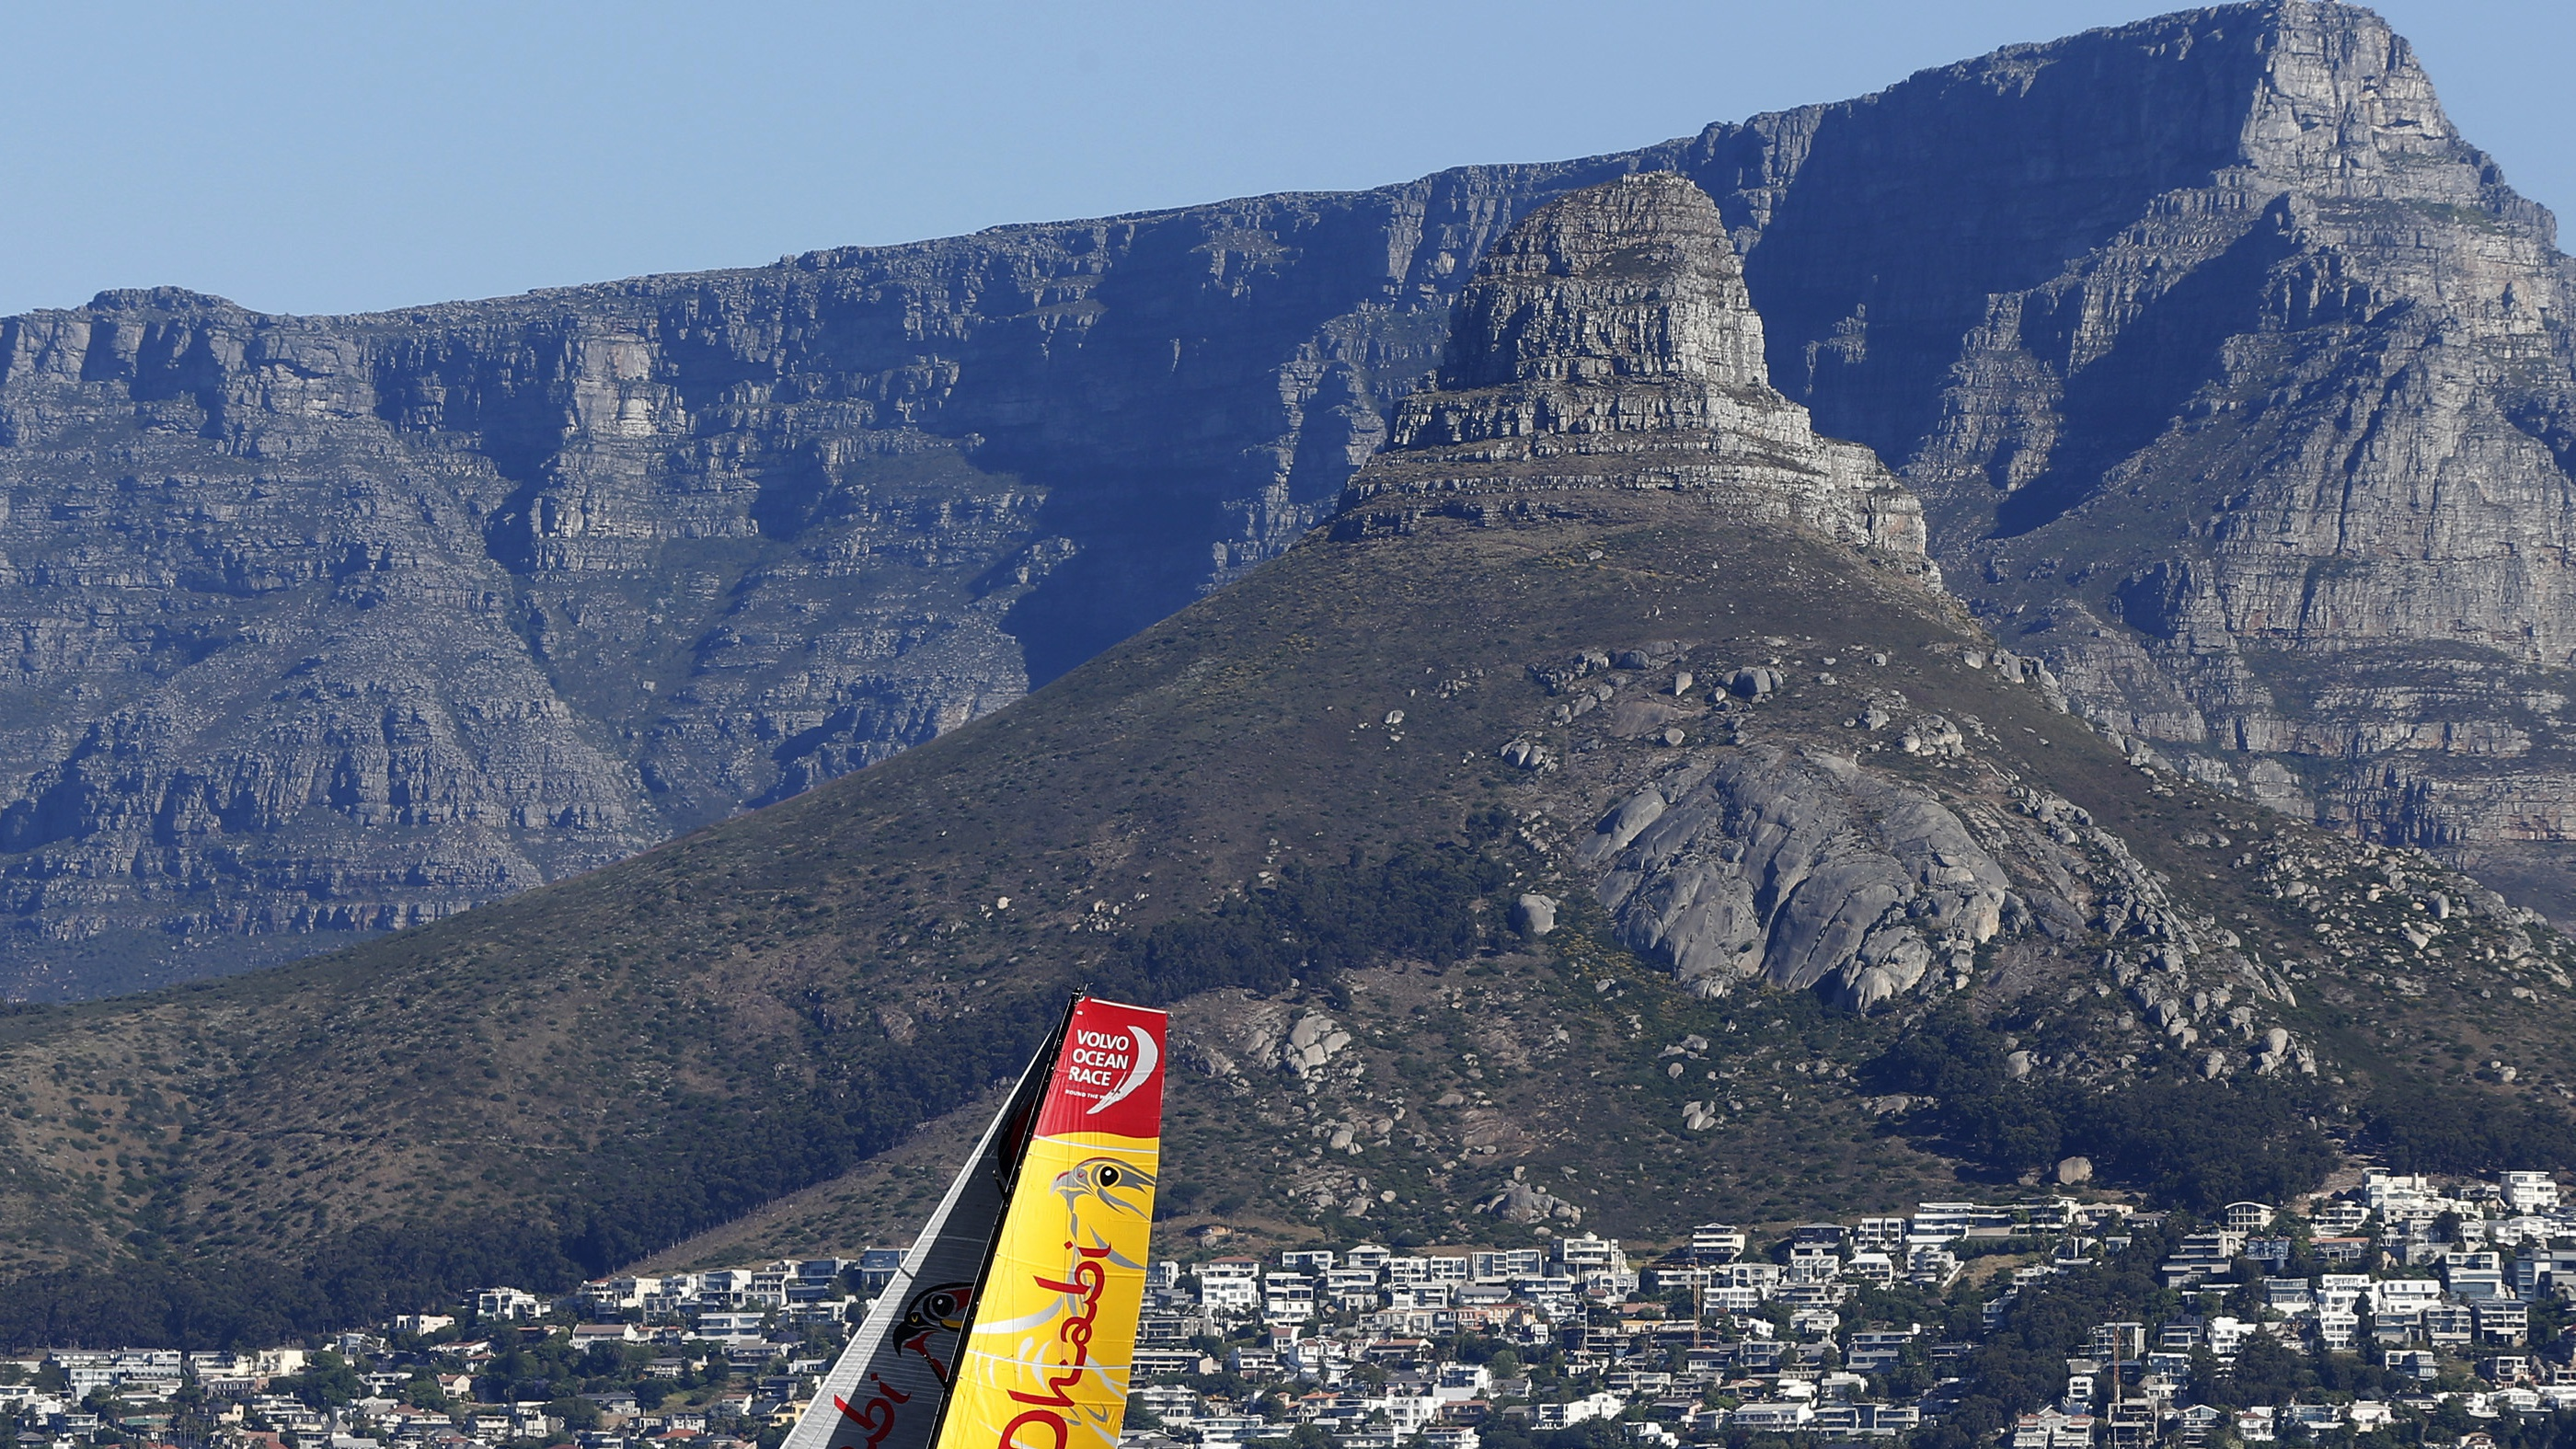 Table Mountain, a popular tourist attraction in South Africa, is one of the seven wonders of thr world.